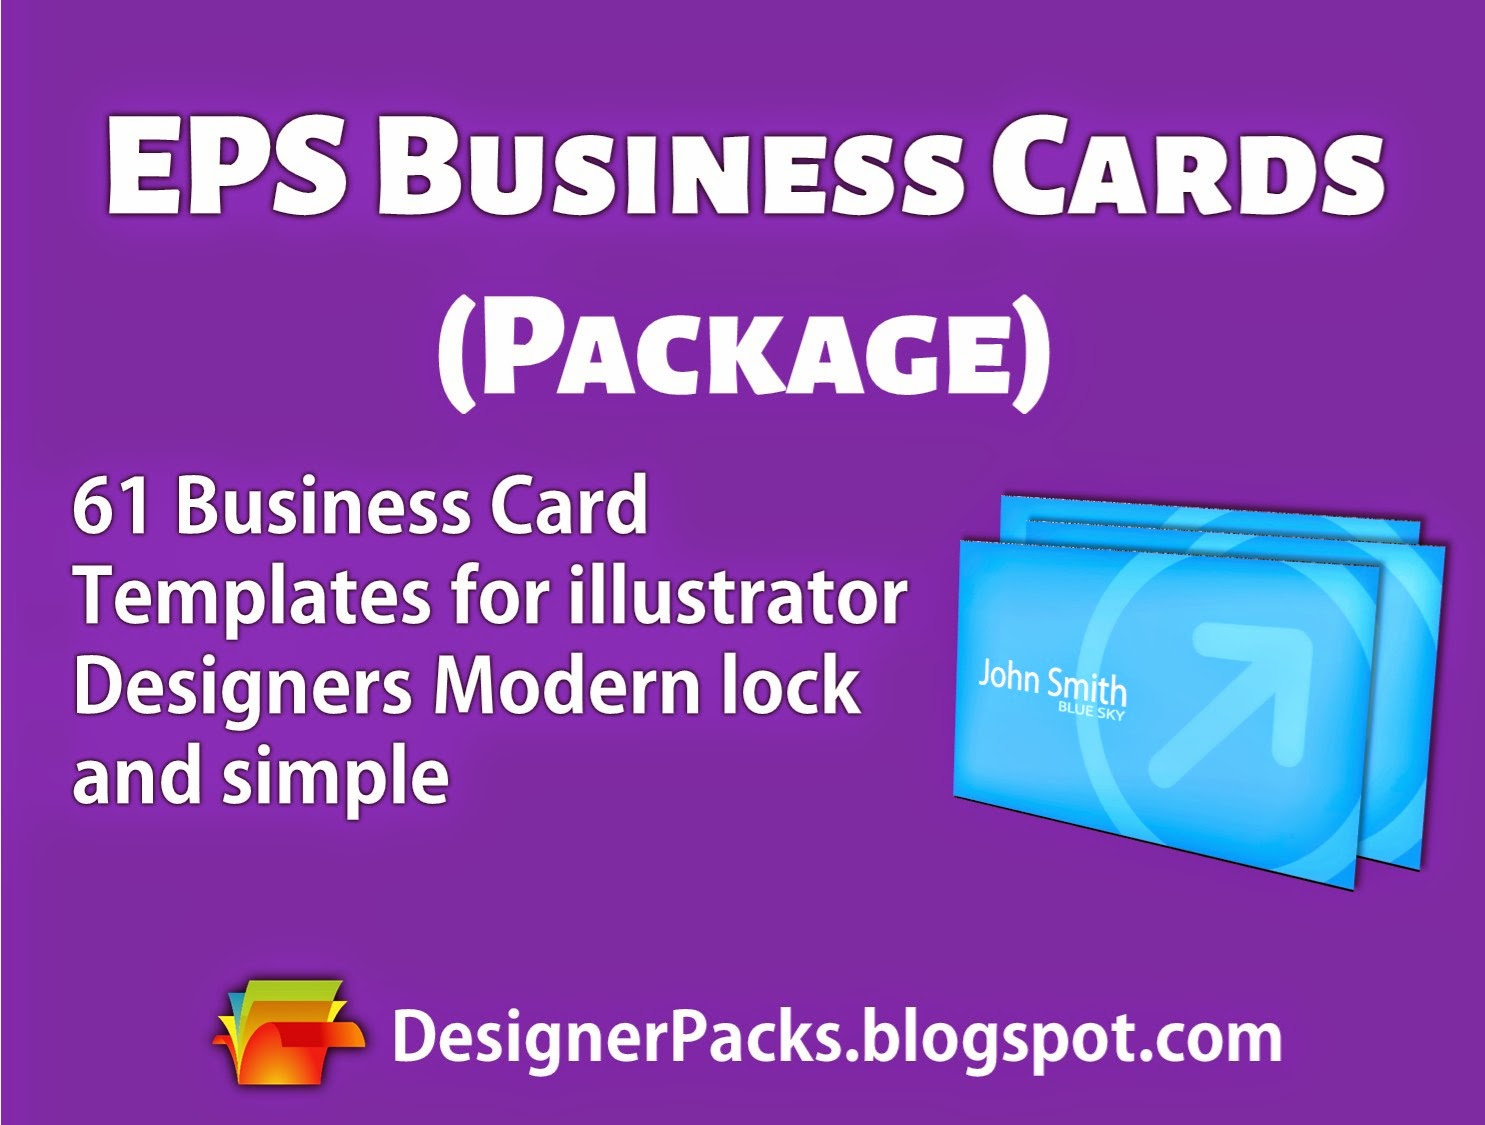 61 eps business card templates pack free download designer packs flashek